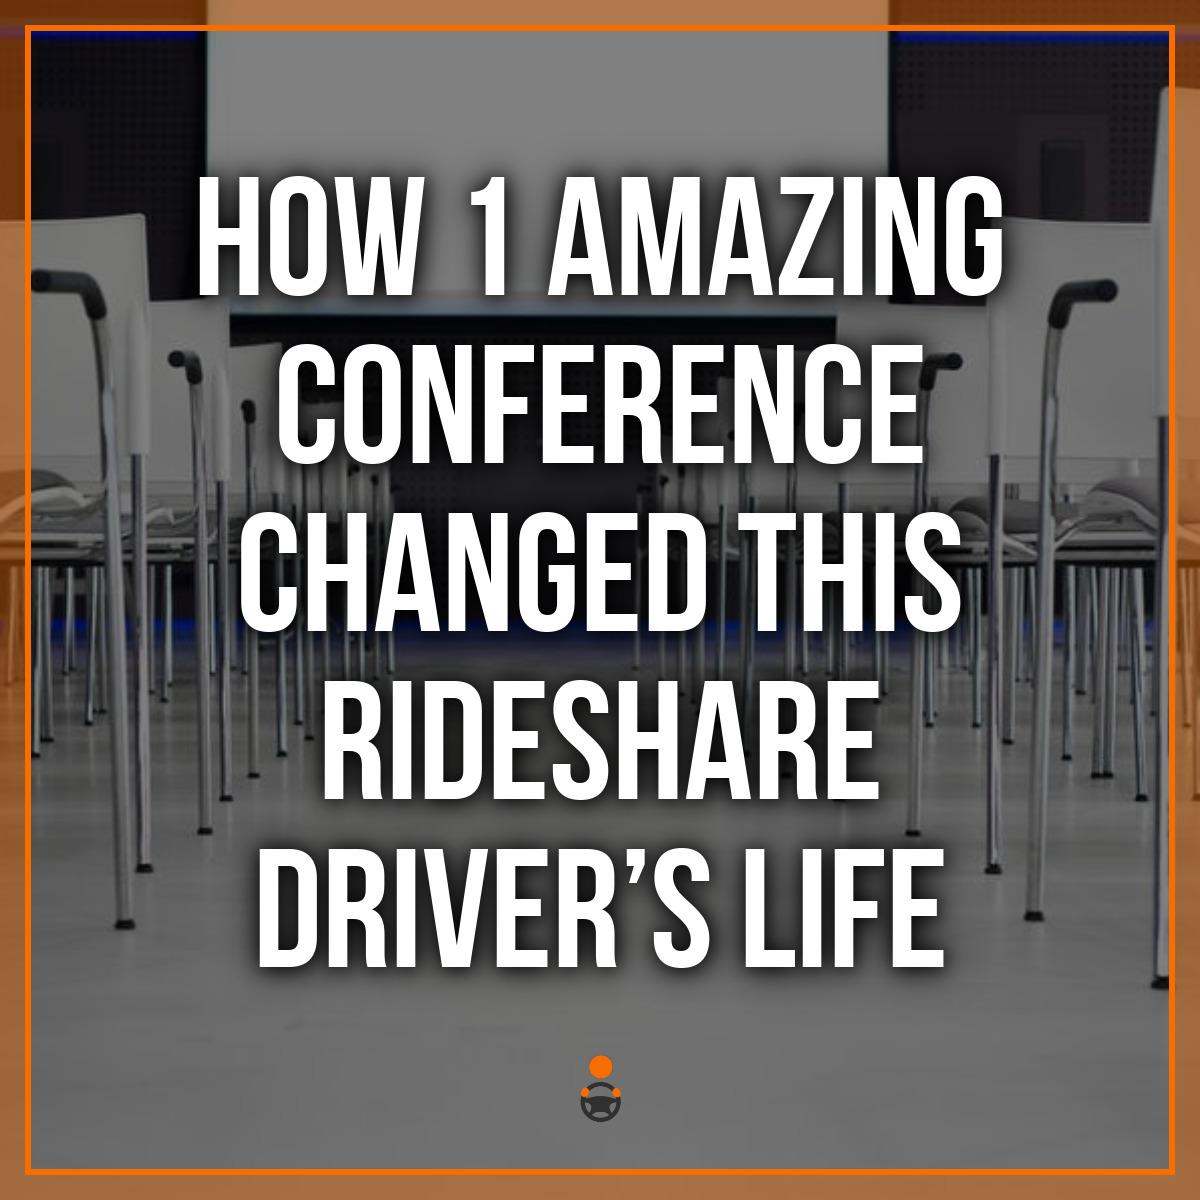 How 1 Amazing Conference Changed This Rideshare Driver's Life